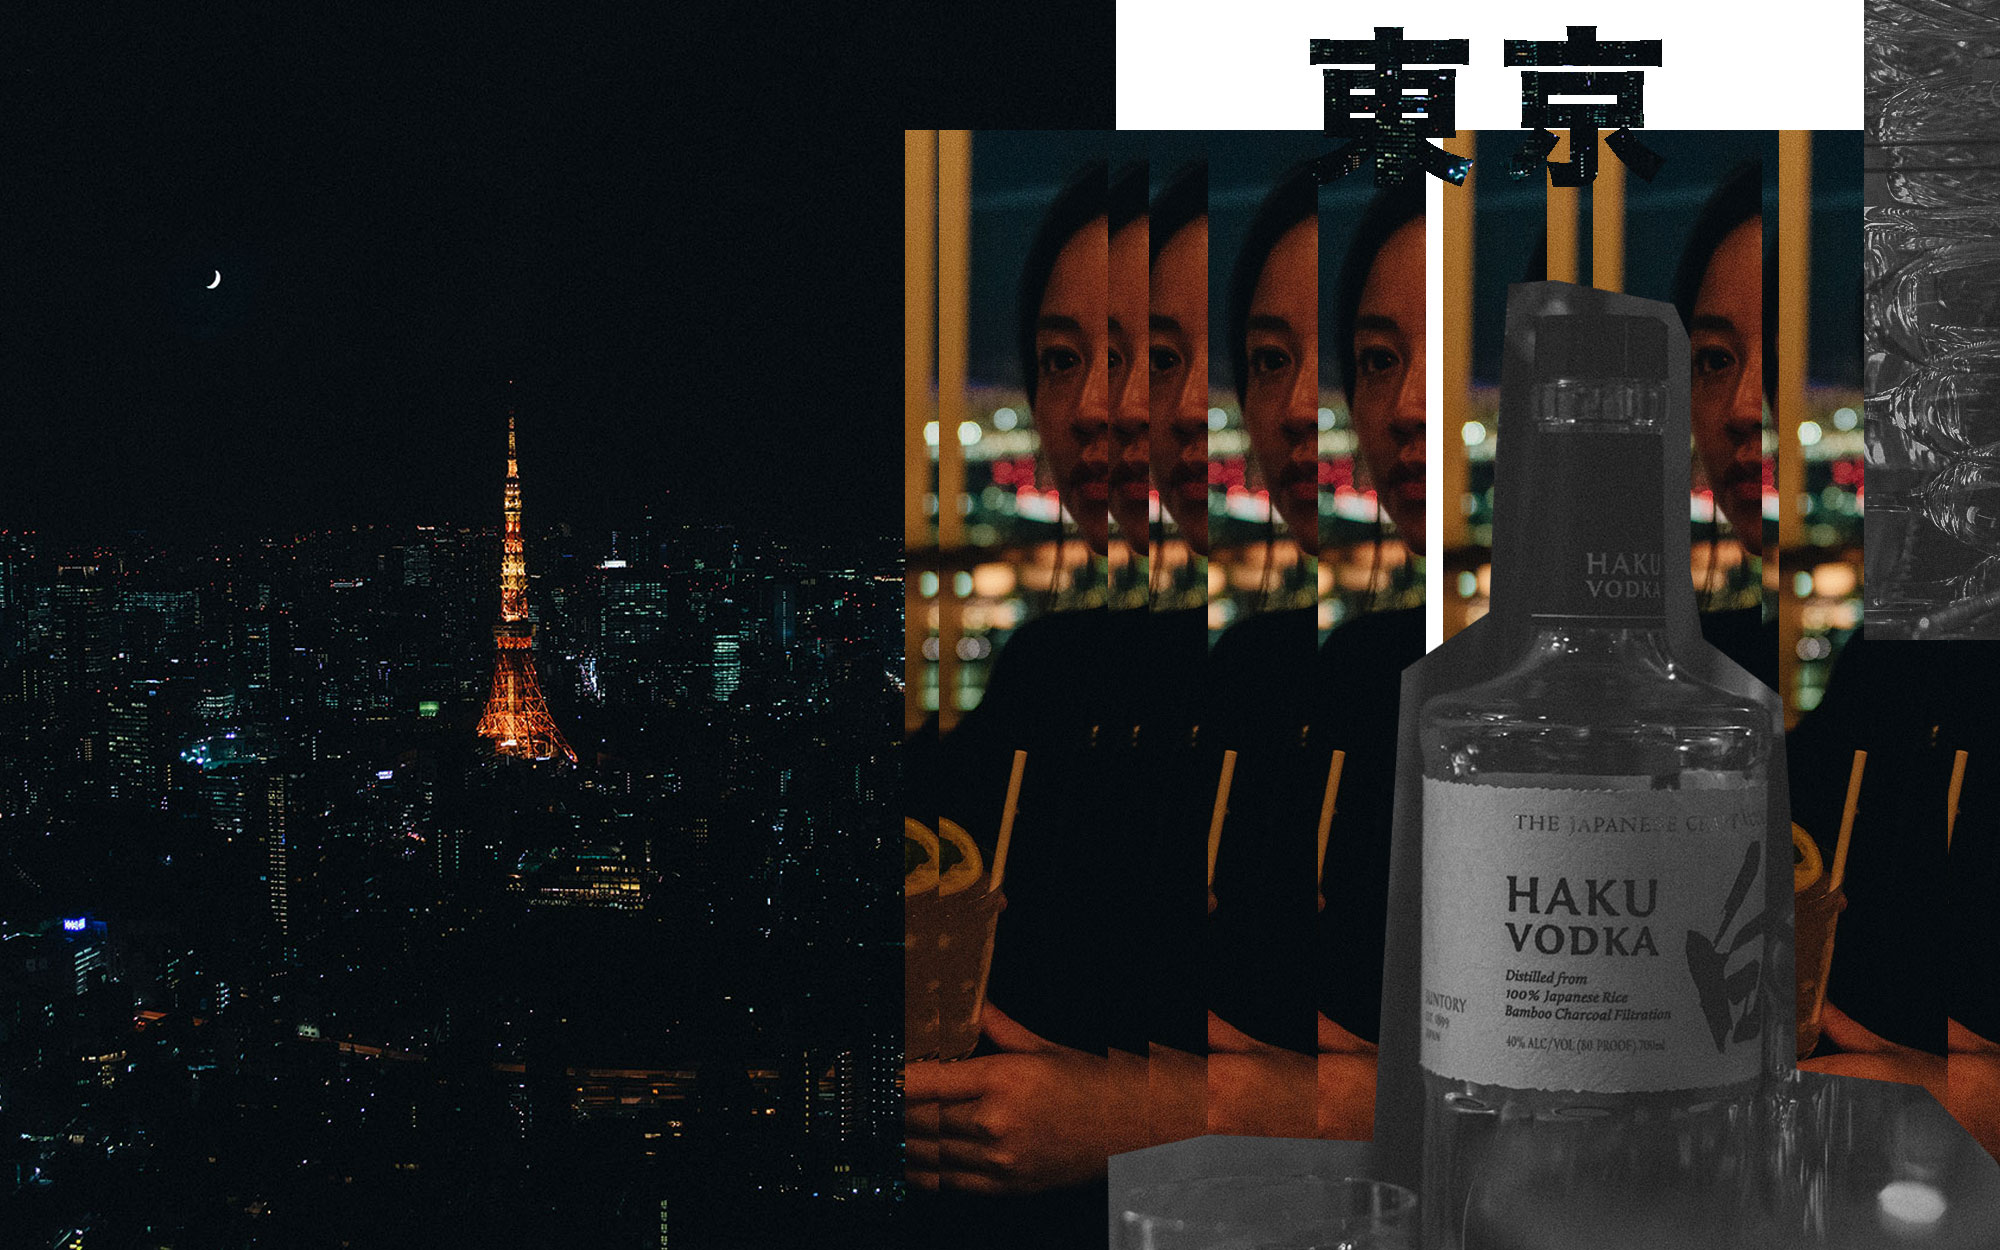 Tokyo Bar Guide w/ Haku Vodka - 5 Bars to have a drink in Tokyo / iHeartAlice.com - Travel, Lifestyle & Foodblog by Alice M. Huynh / Tokyo Travel Guide